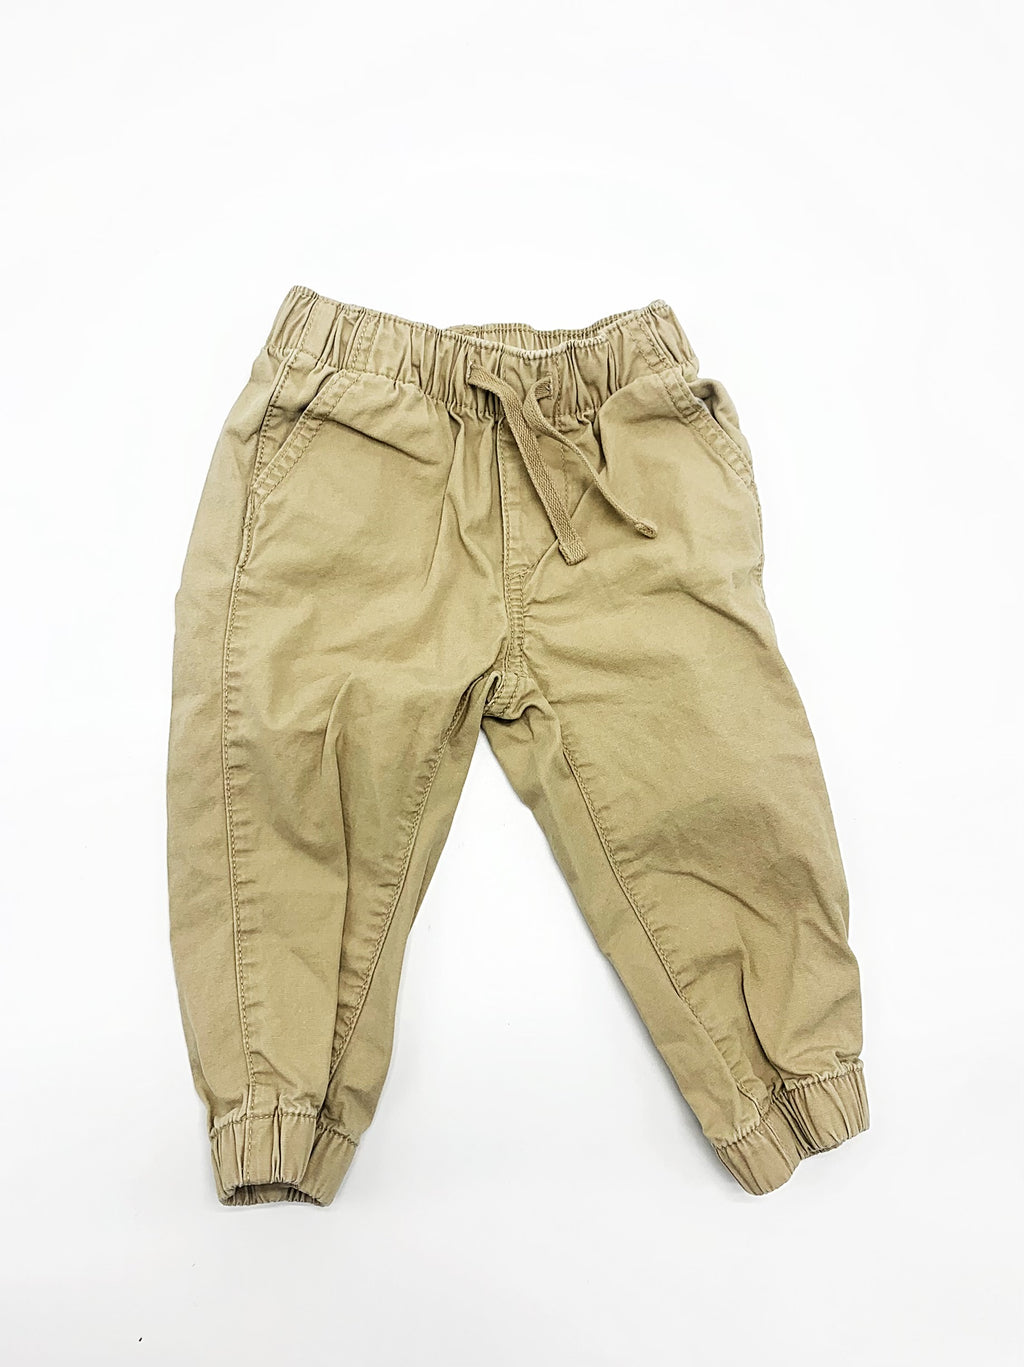 Gap bottoms size 18-24m